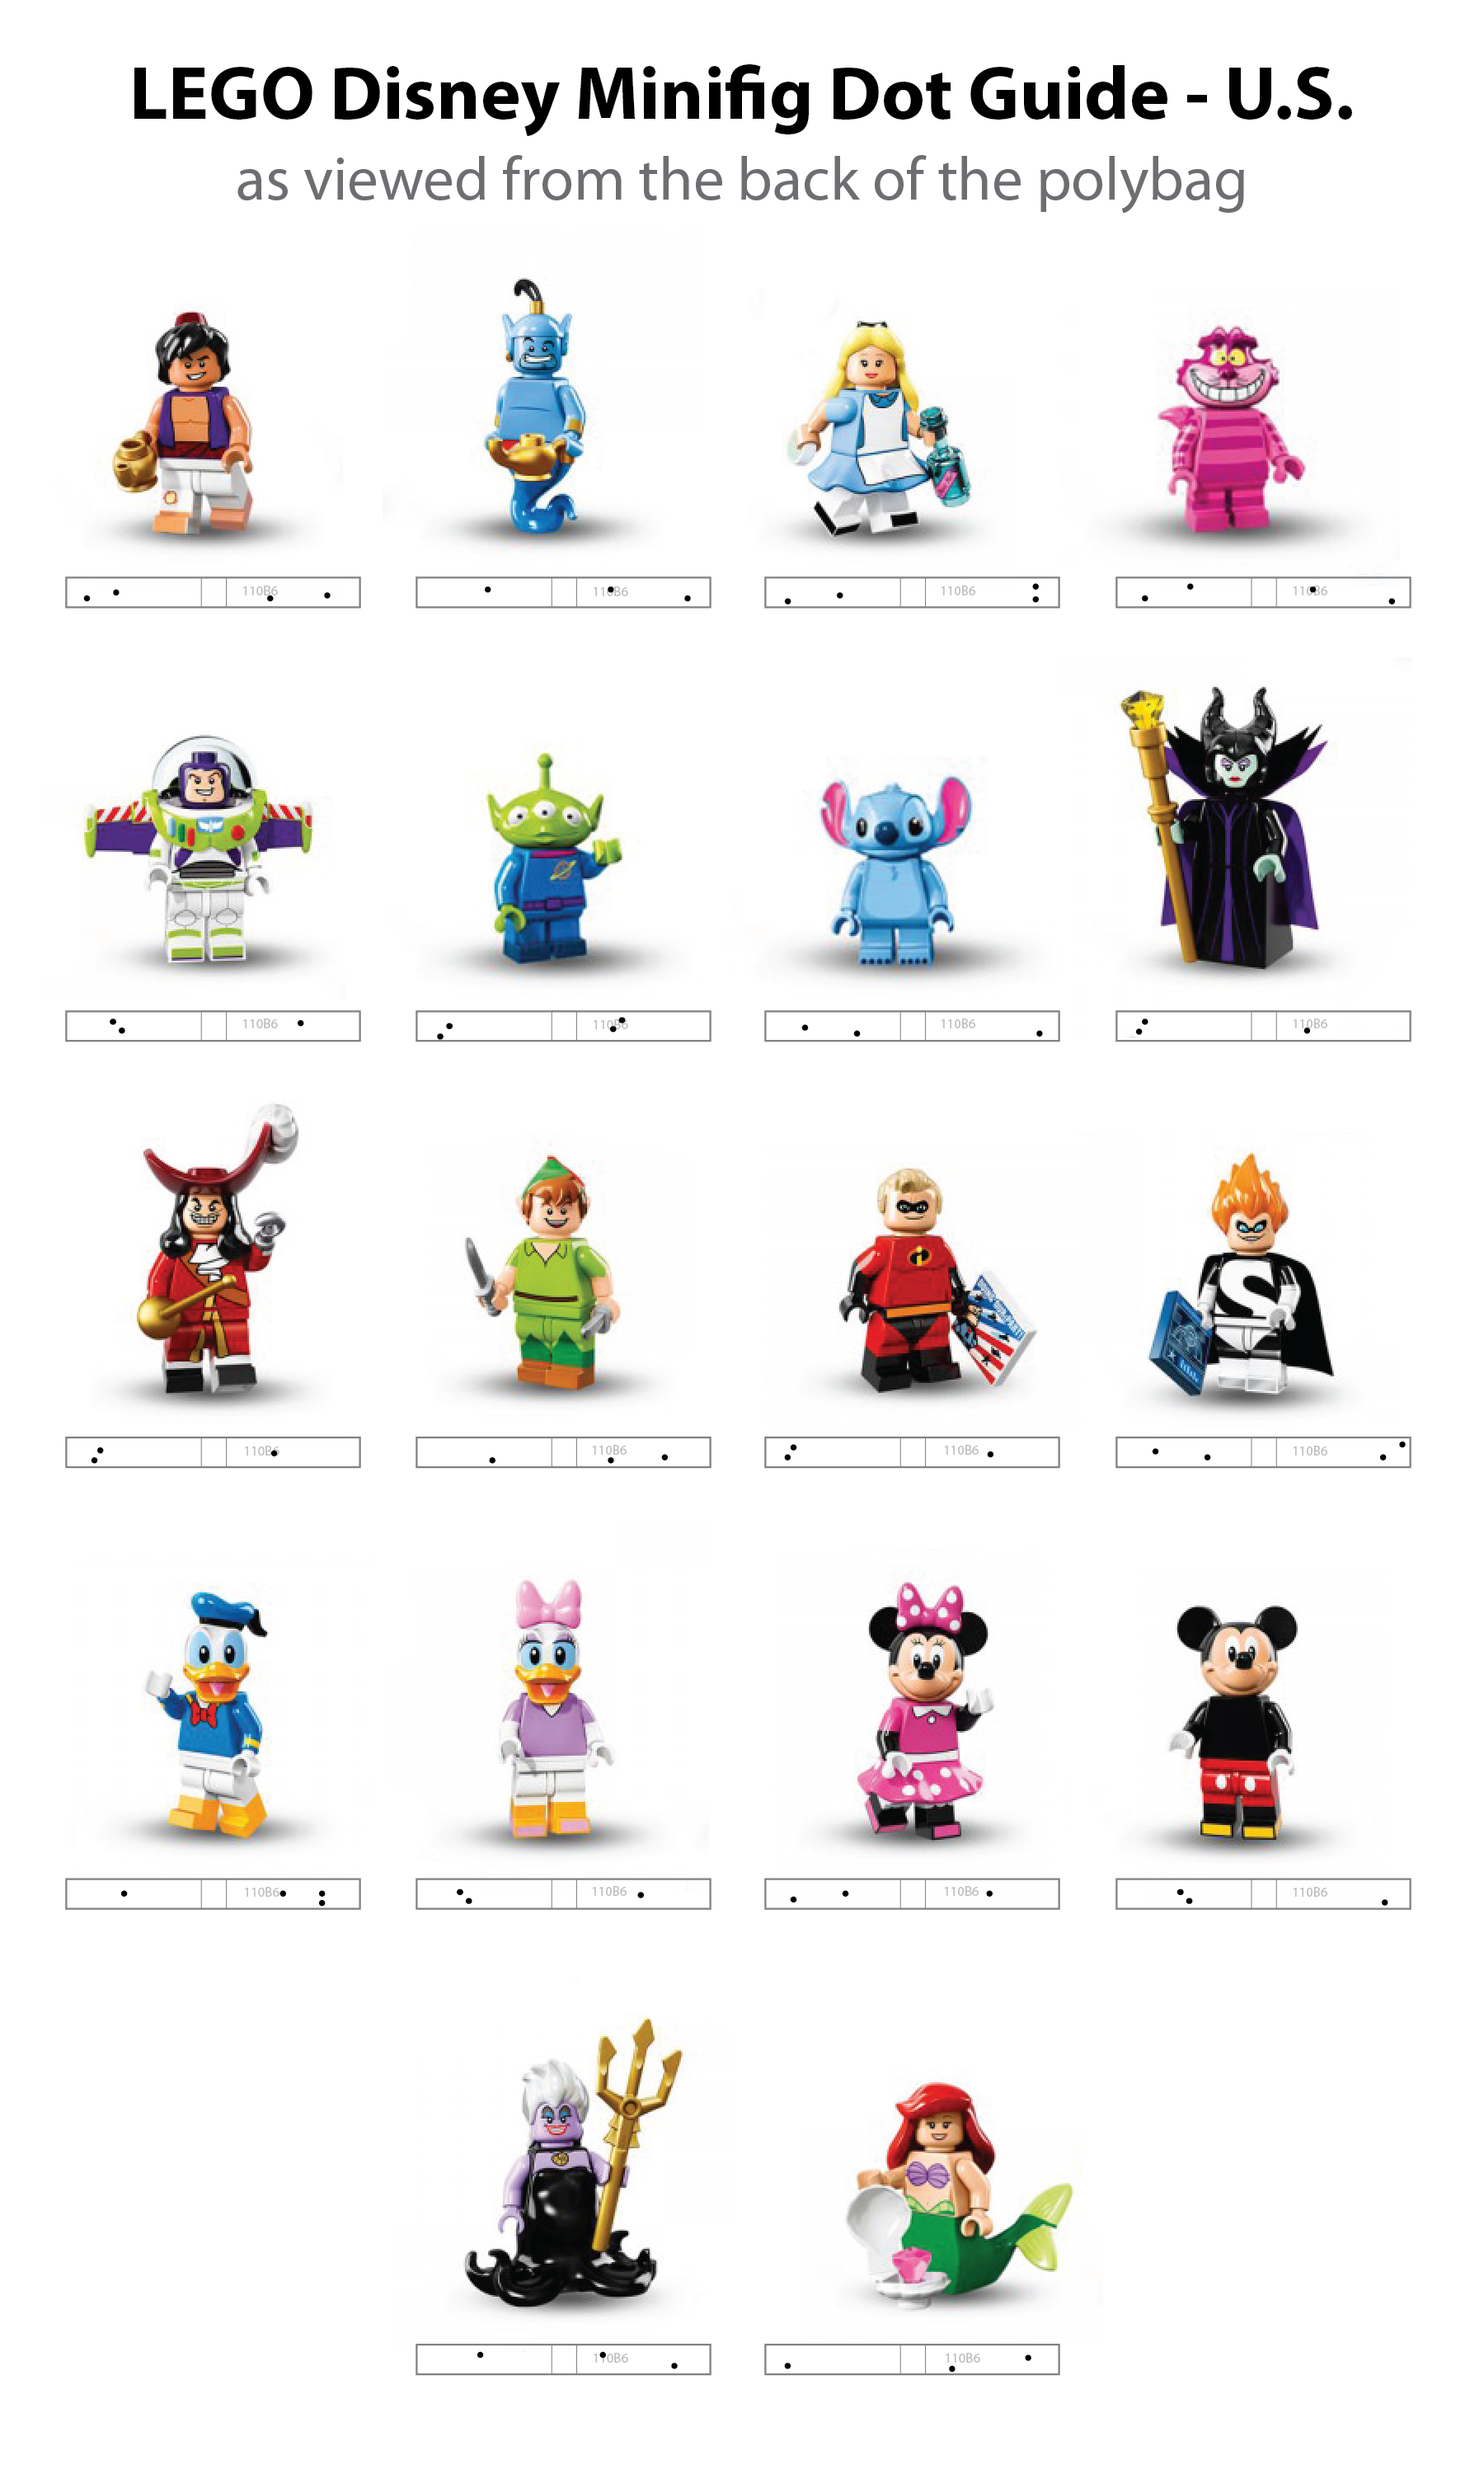 LEGO Disney Minifig Dot Codes